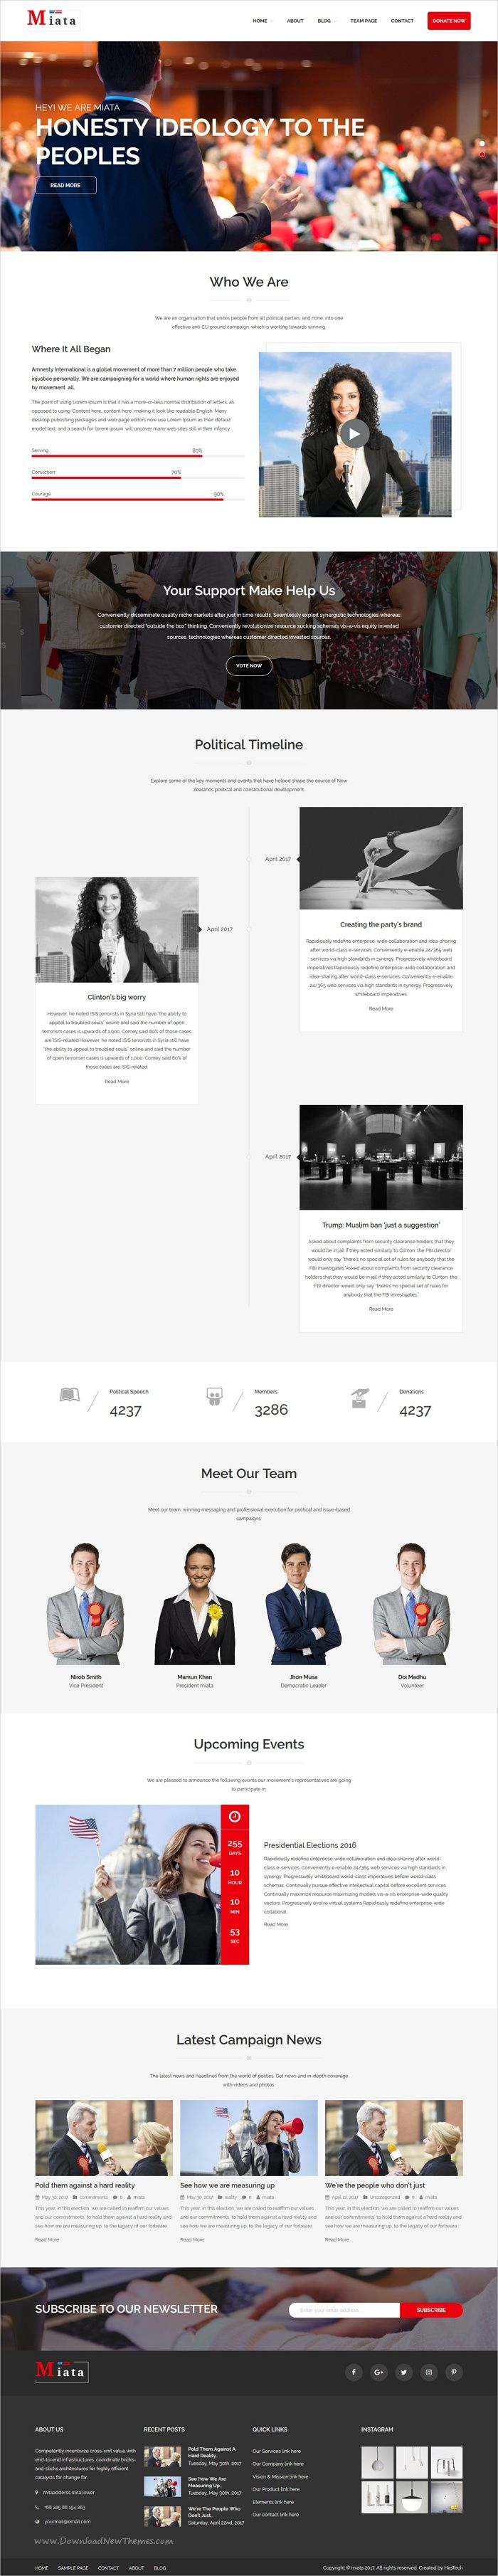 Miata is clean and modern design 3in1 responsive #WordPress theme for political #campaign, candidate, #election or politicians website download now..